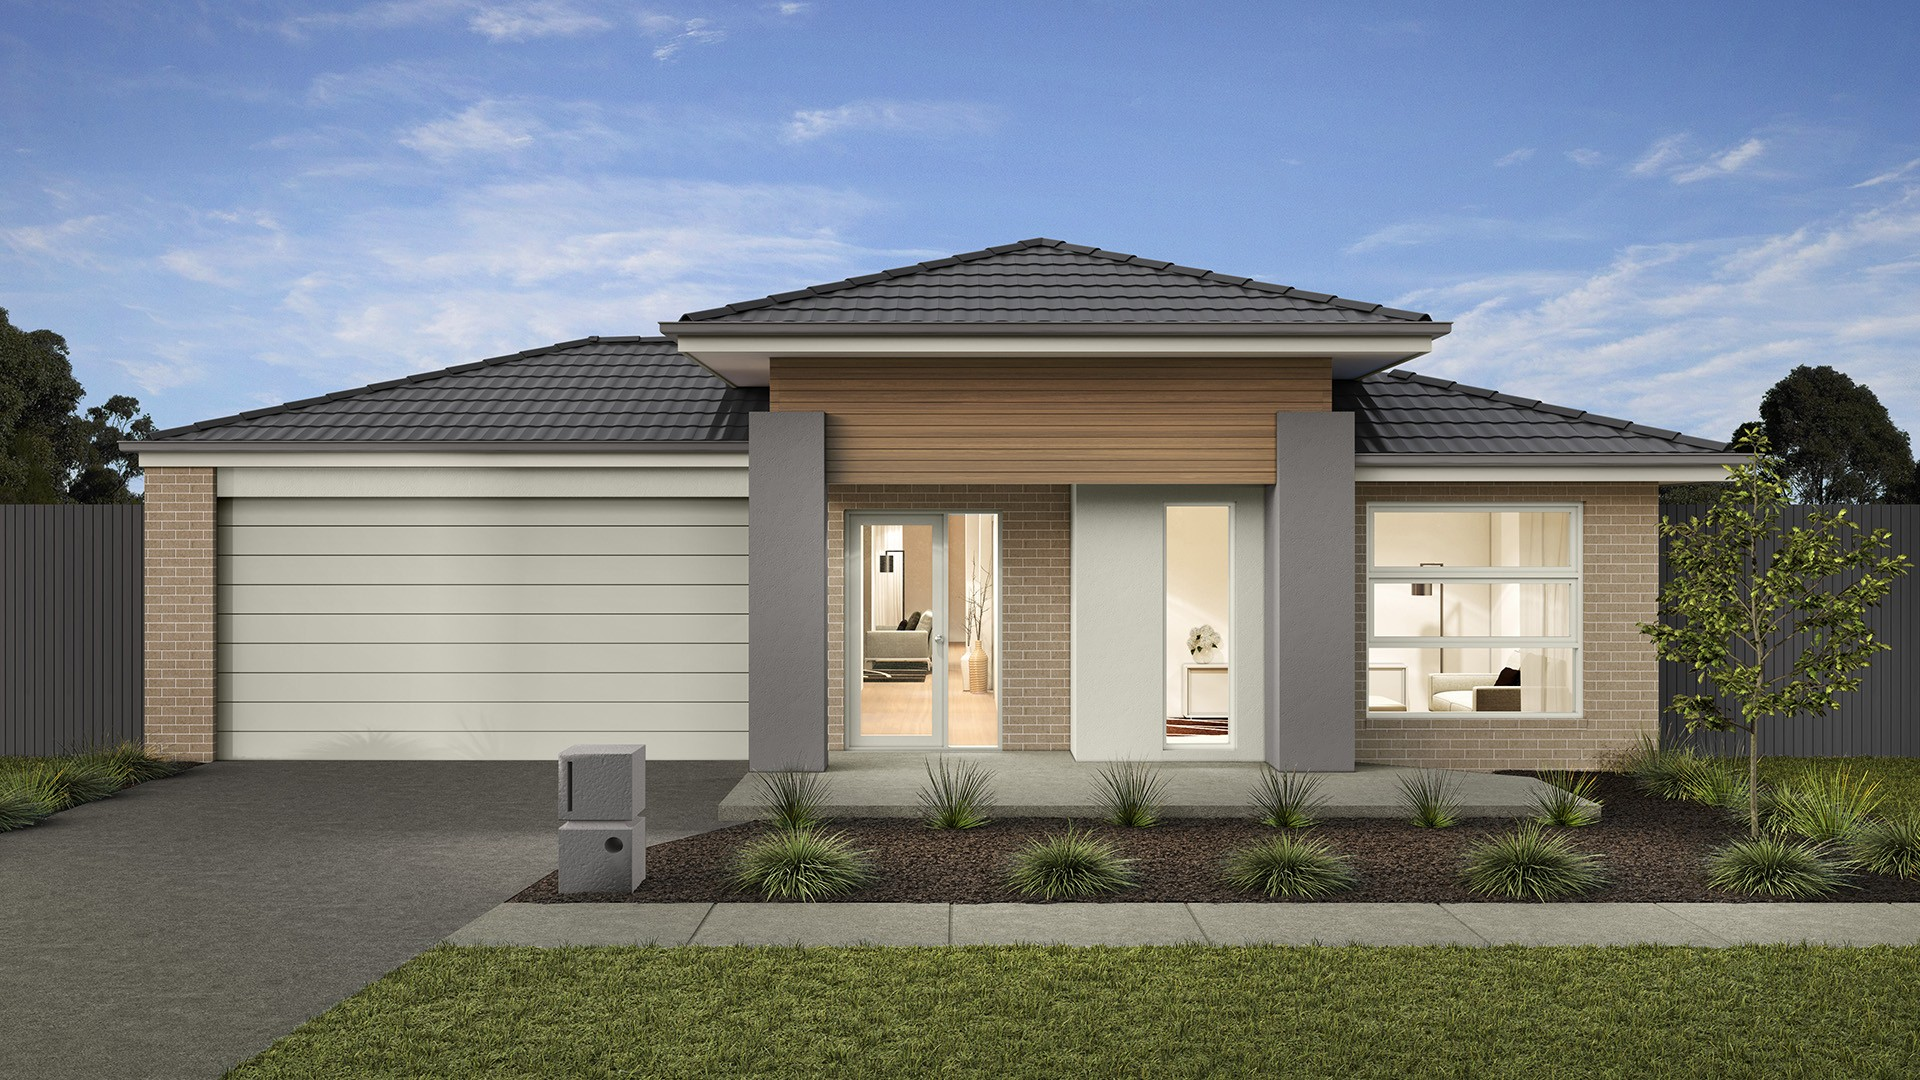 EASYLIVING RIVIERA MANCHESTER 14 Exterior Image 2